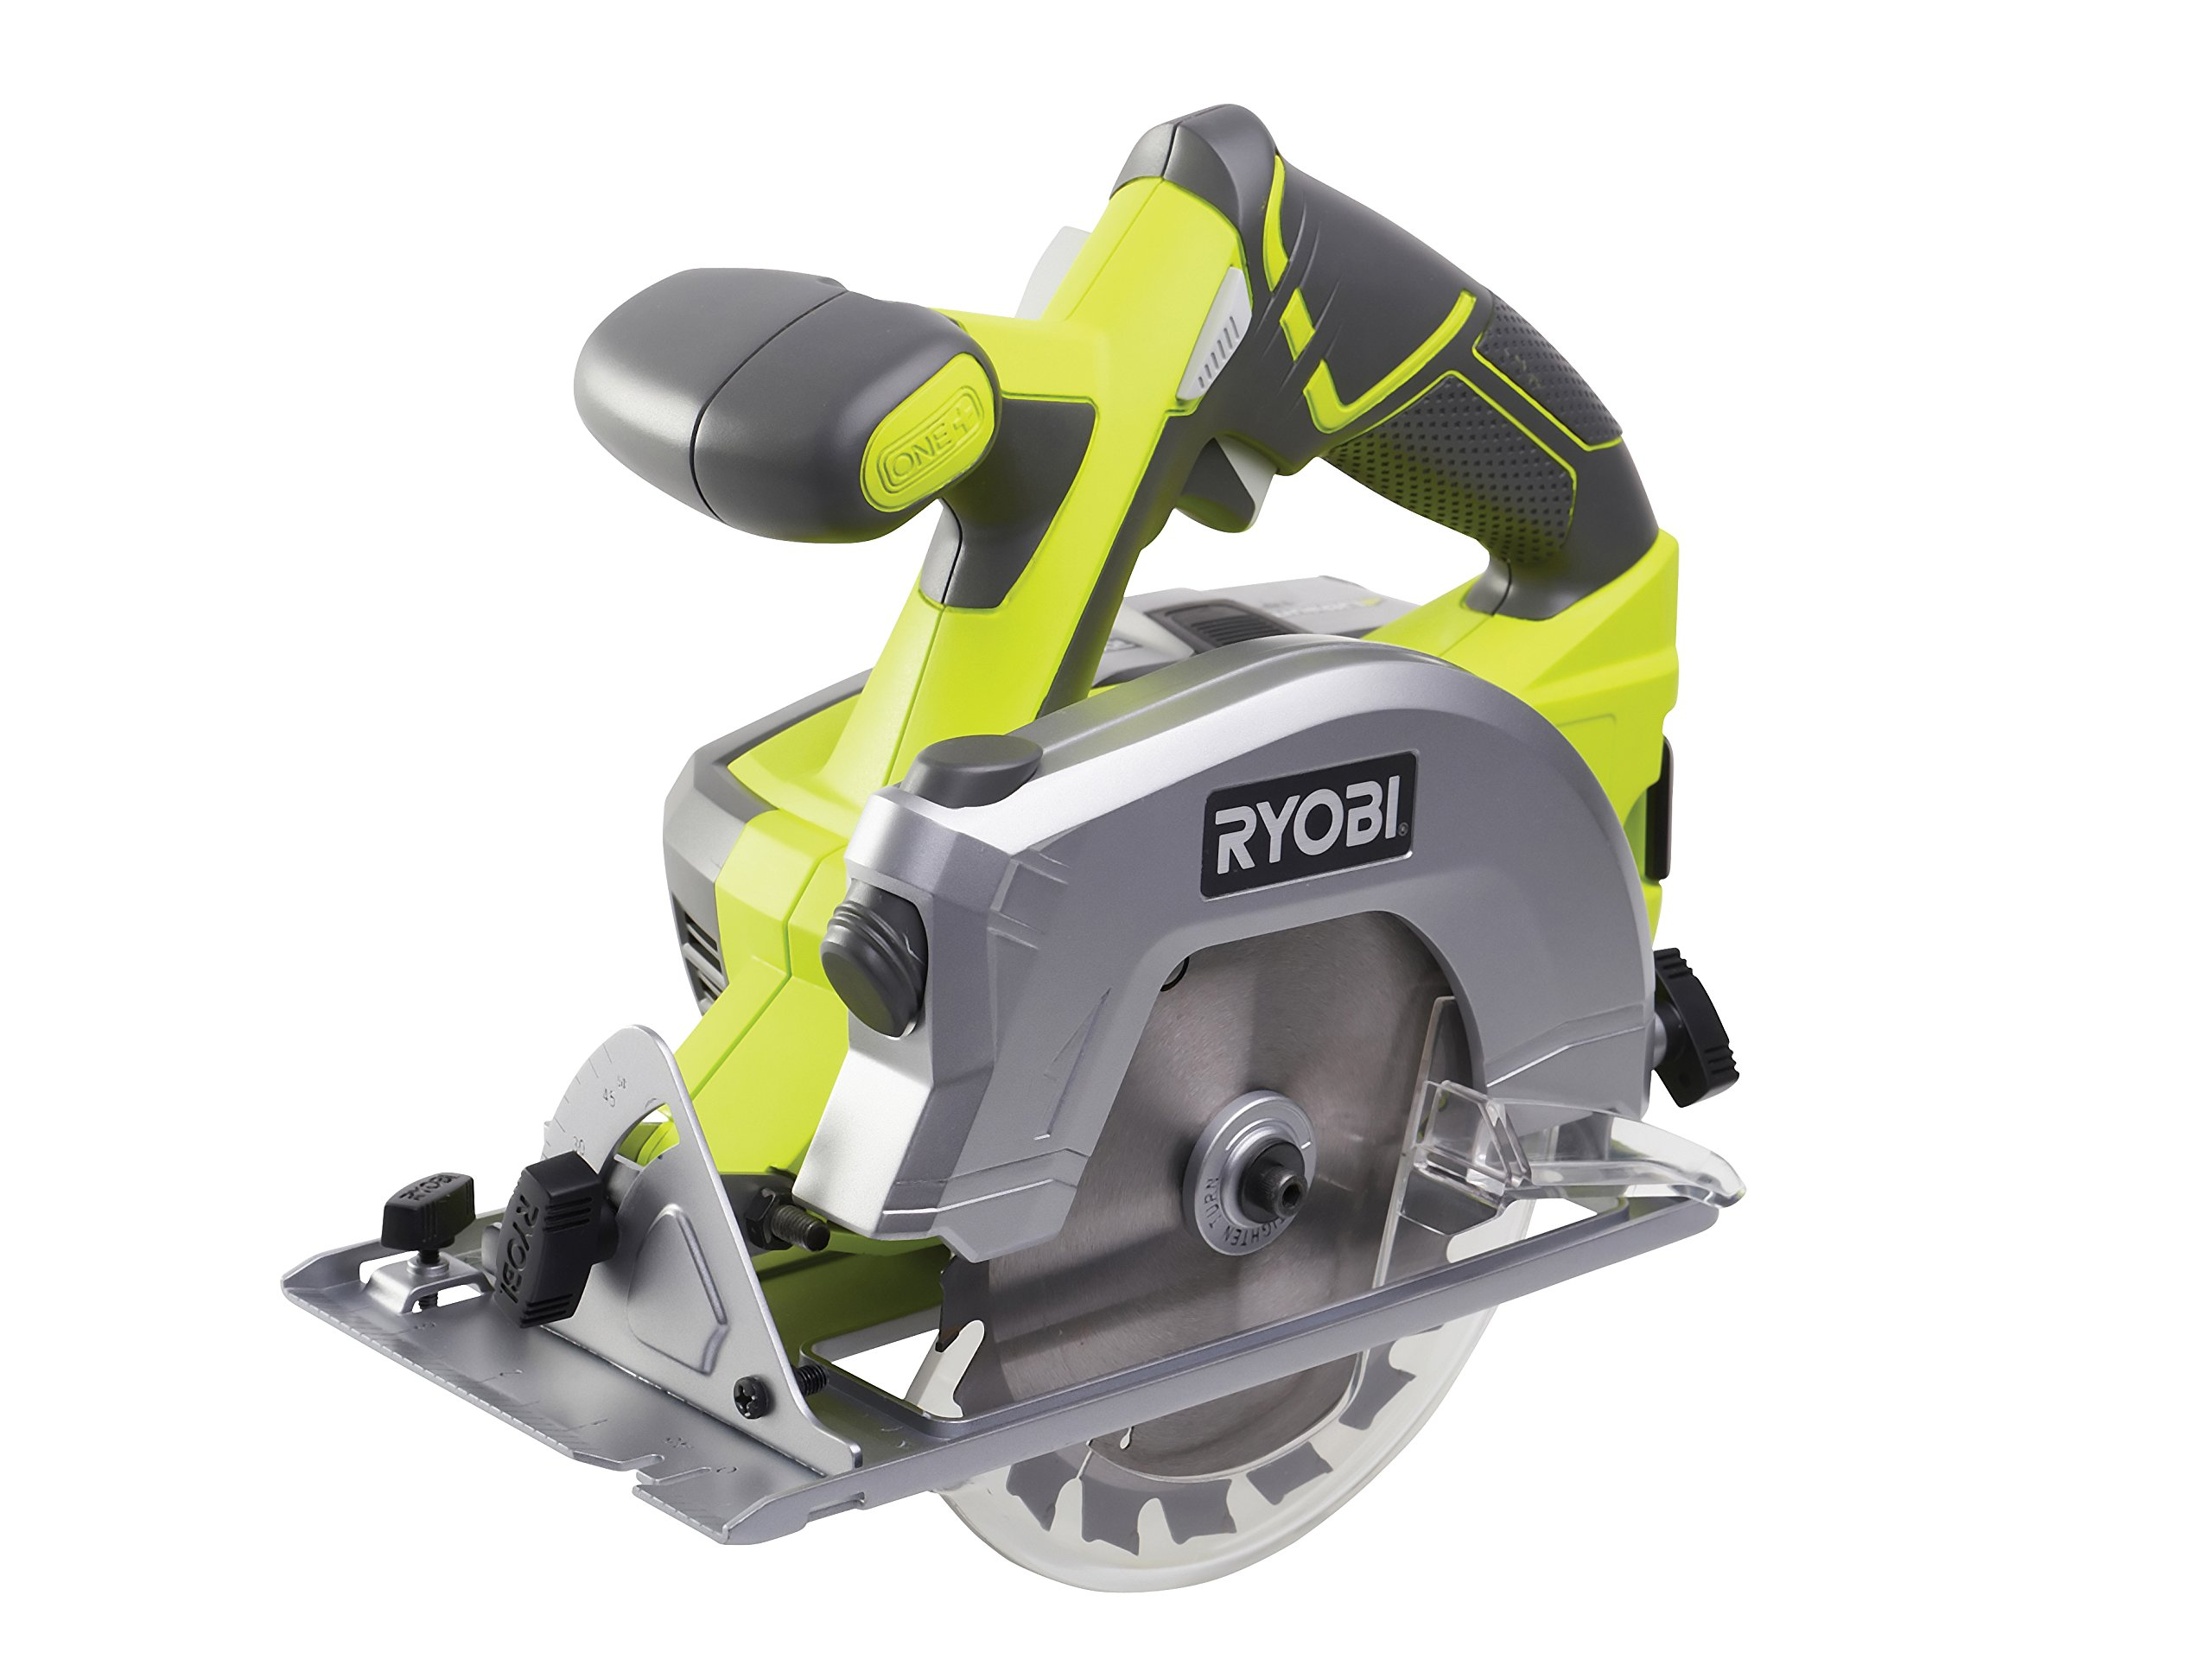 RWSL-1801M ONE+ 18V 150mm Circular Saw 18 Volt Bare Unit by Ryobi